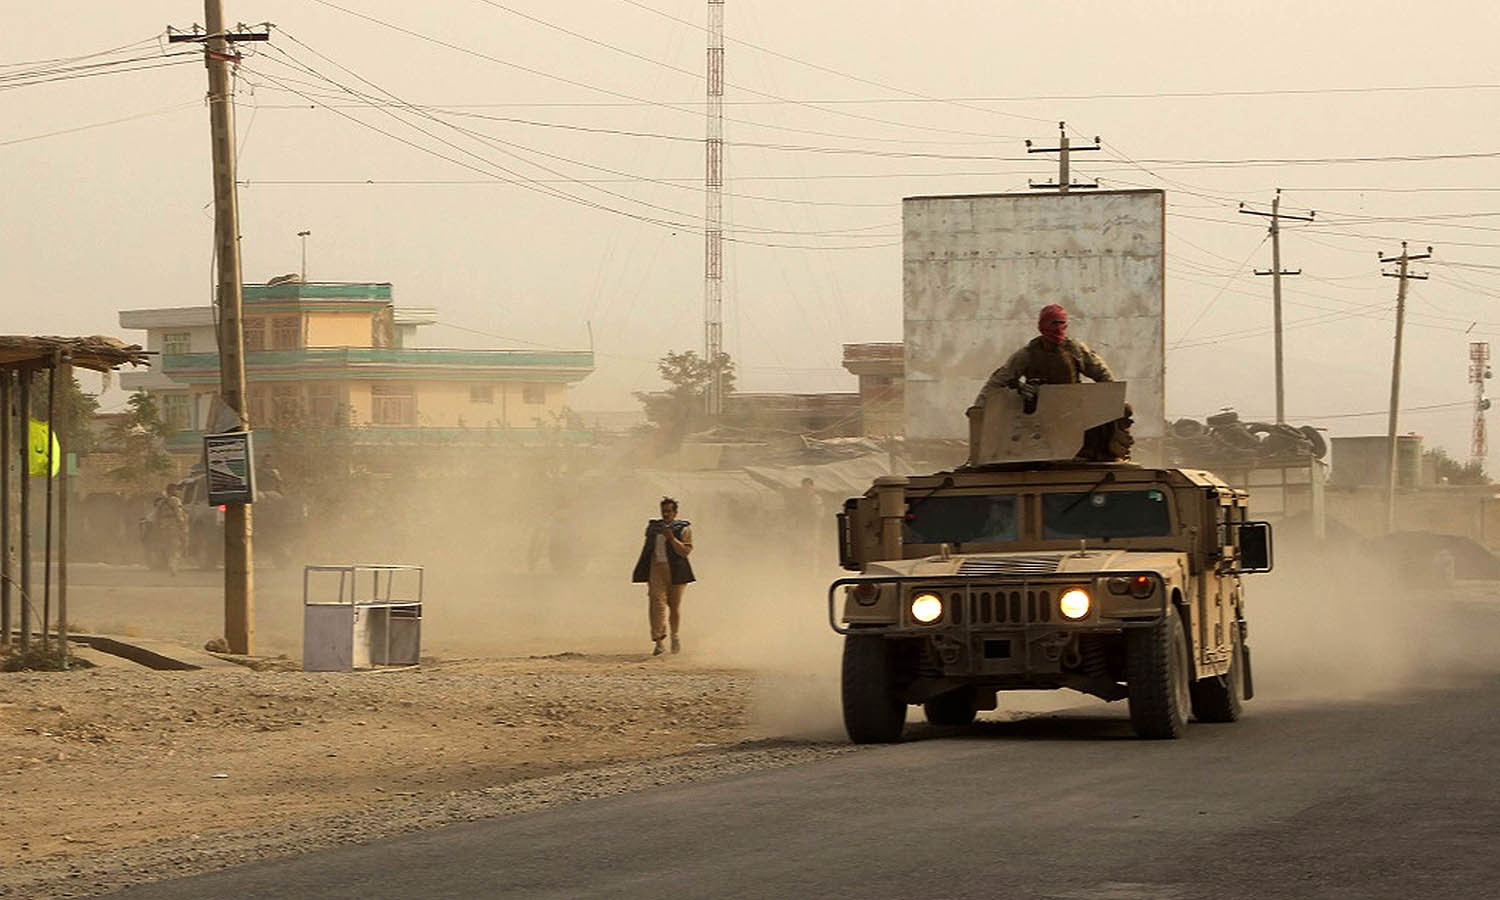 Afghan security forces travel in a Humvee vehicle, as battles were ongoing between Taliban militants and Afghan security forces, in Kunduz, capital of northeastern Kunduz province. — AFP